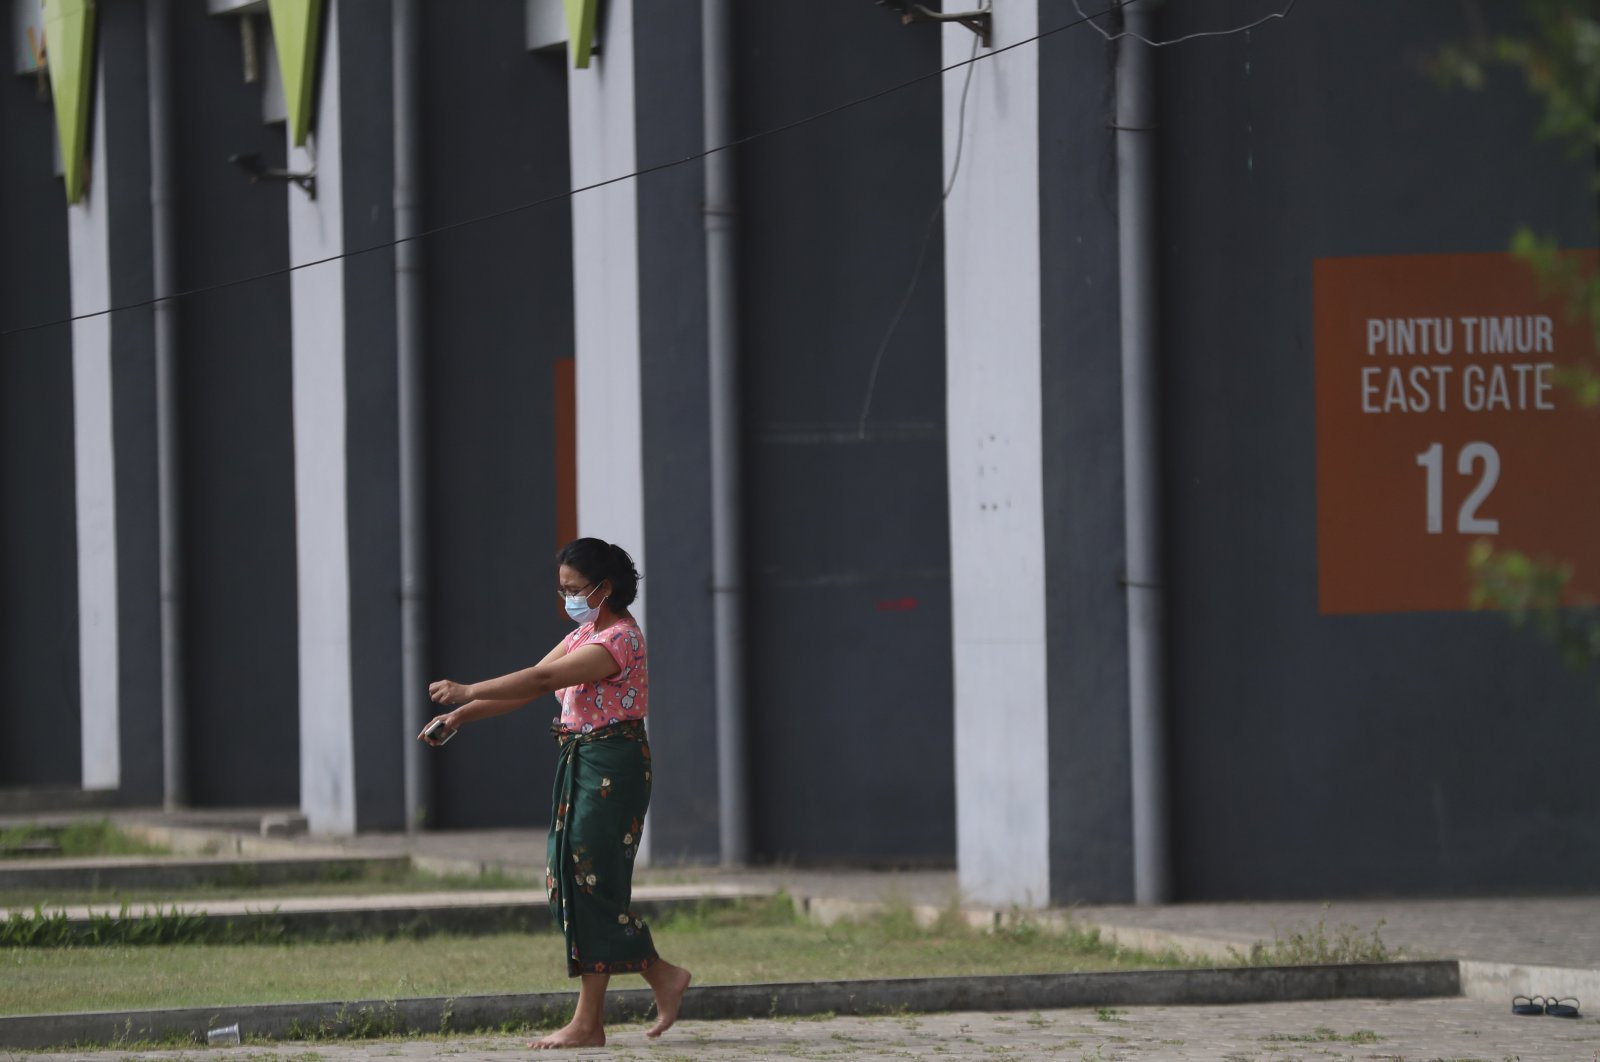 A COVID-19 patient exercises at Patriot Candrabhaga Stadium which is turned into isolation center for people showing symptoms amid the coronavirus outbreak in Bekasi on the outskirts of Jakarta, Indonesia, Jan. 5, 2021. (AP Photo)